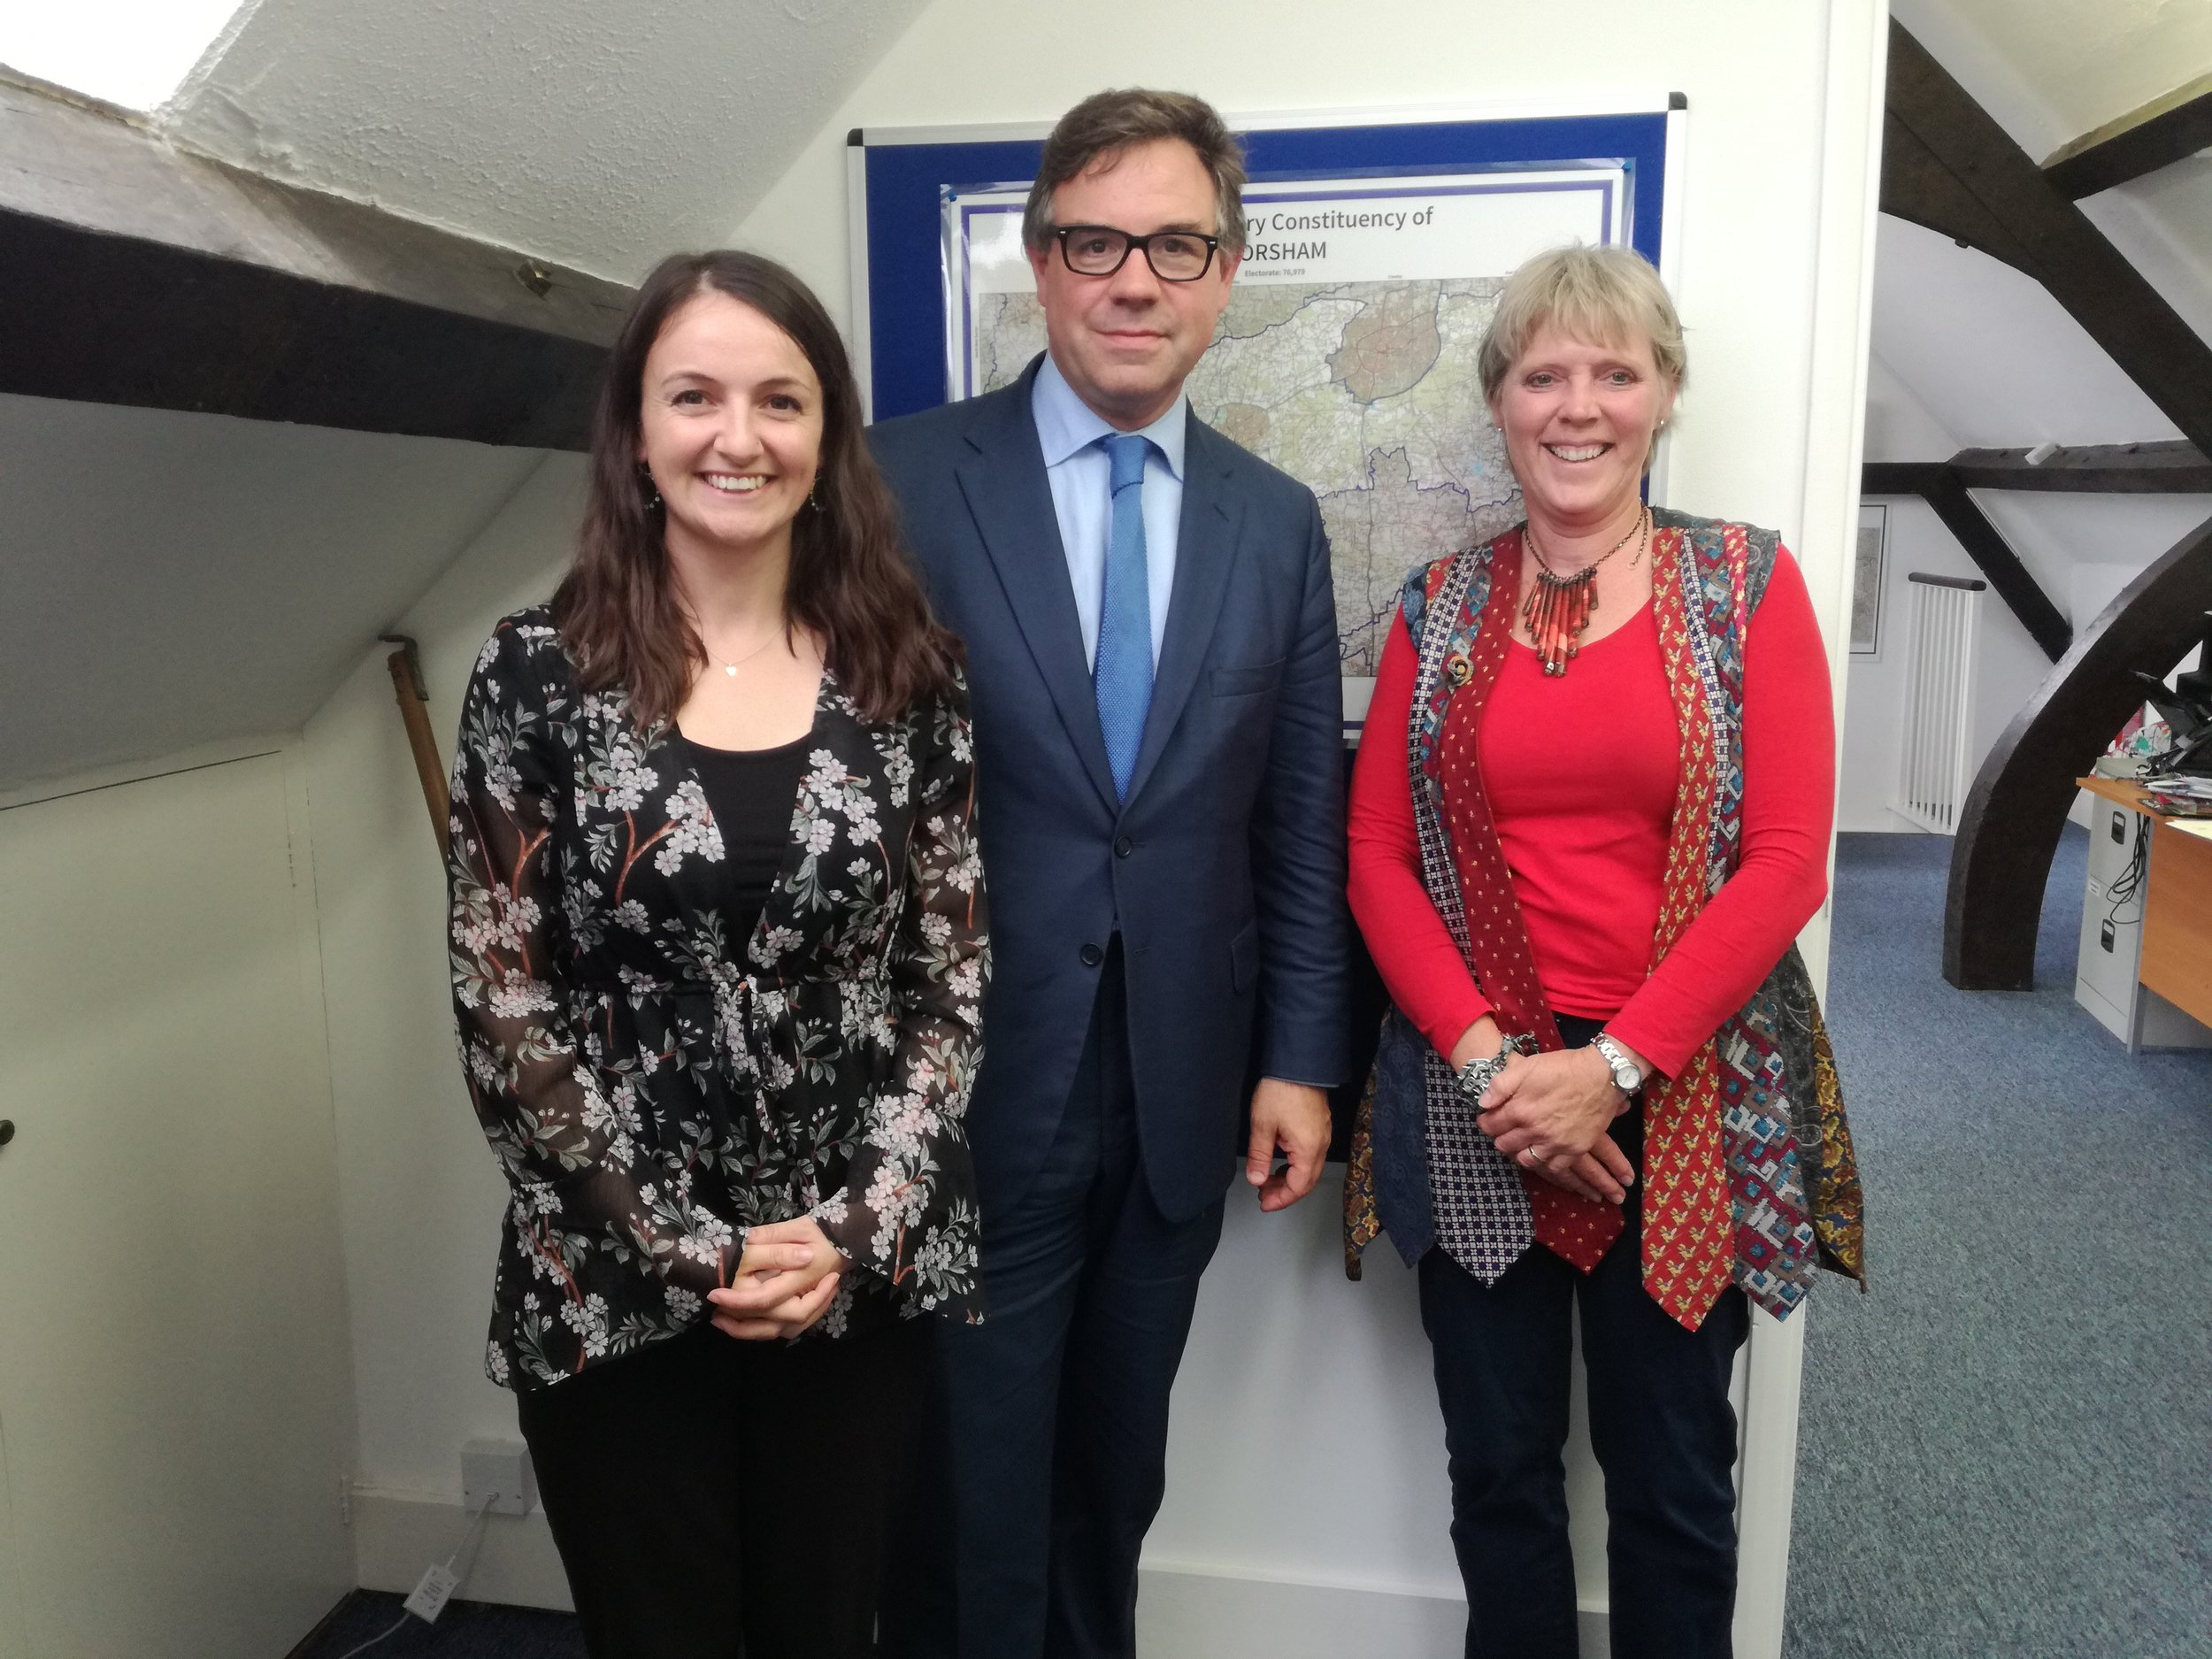 (Left to right), Sarah Robinson, Jeremy Quin and Carrie Cort met to talk about the Government's commitments to net zero emissions and the local work going on in Horsham.